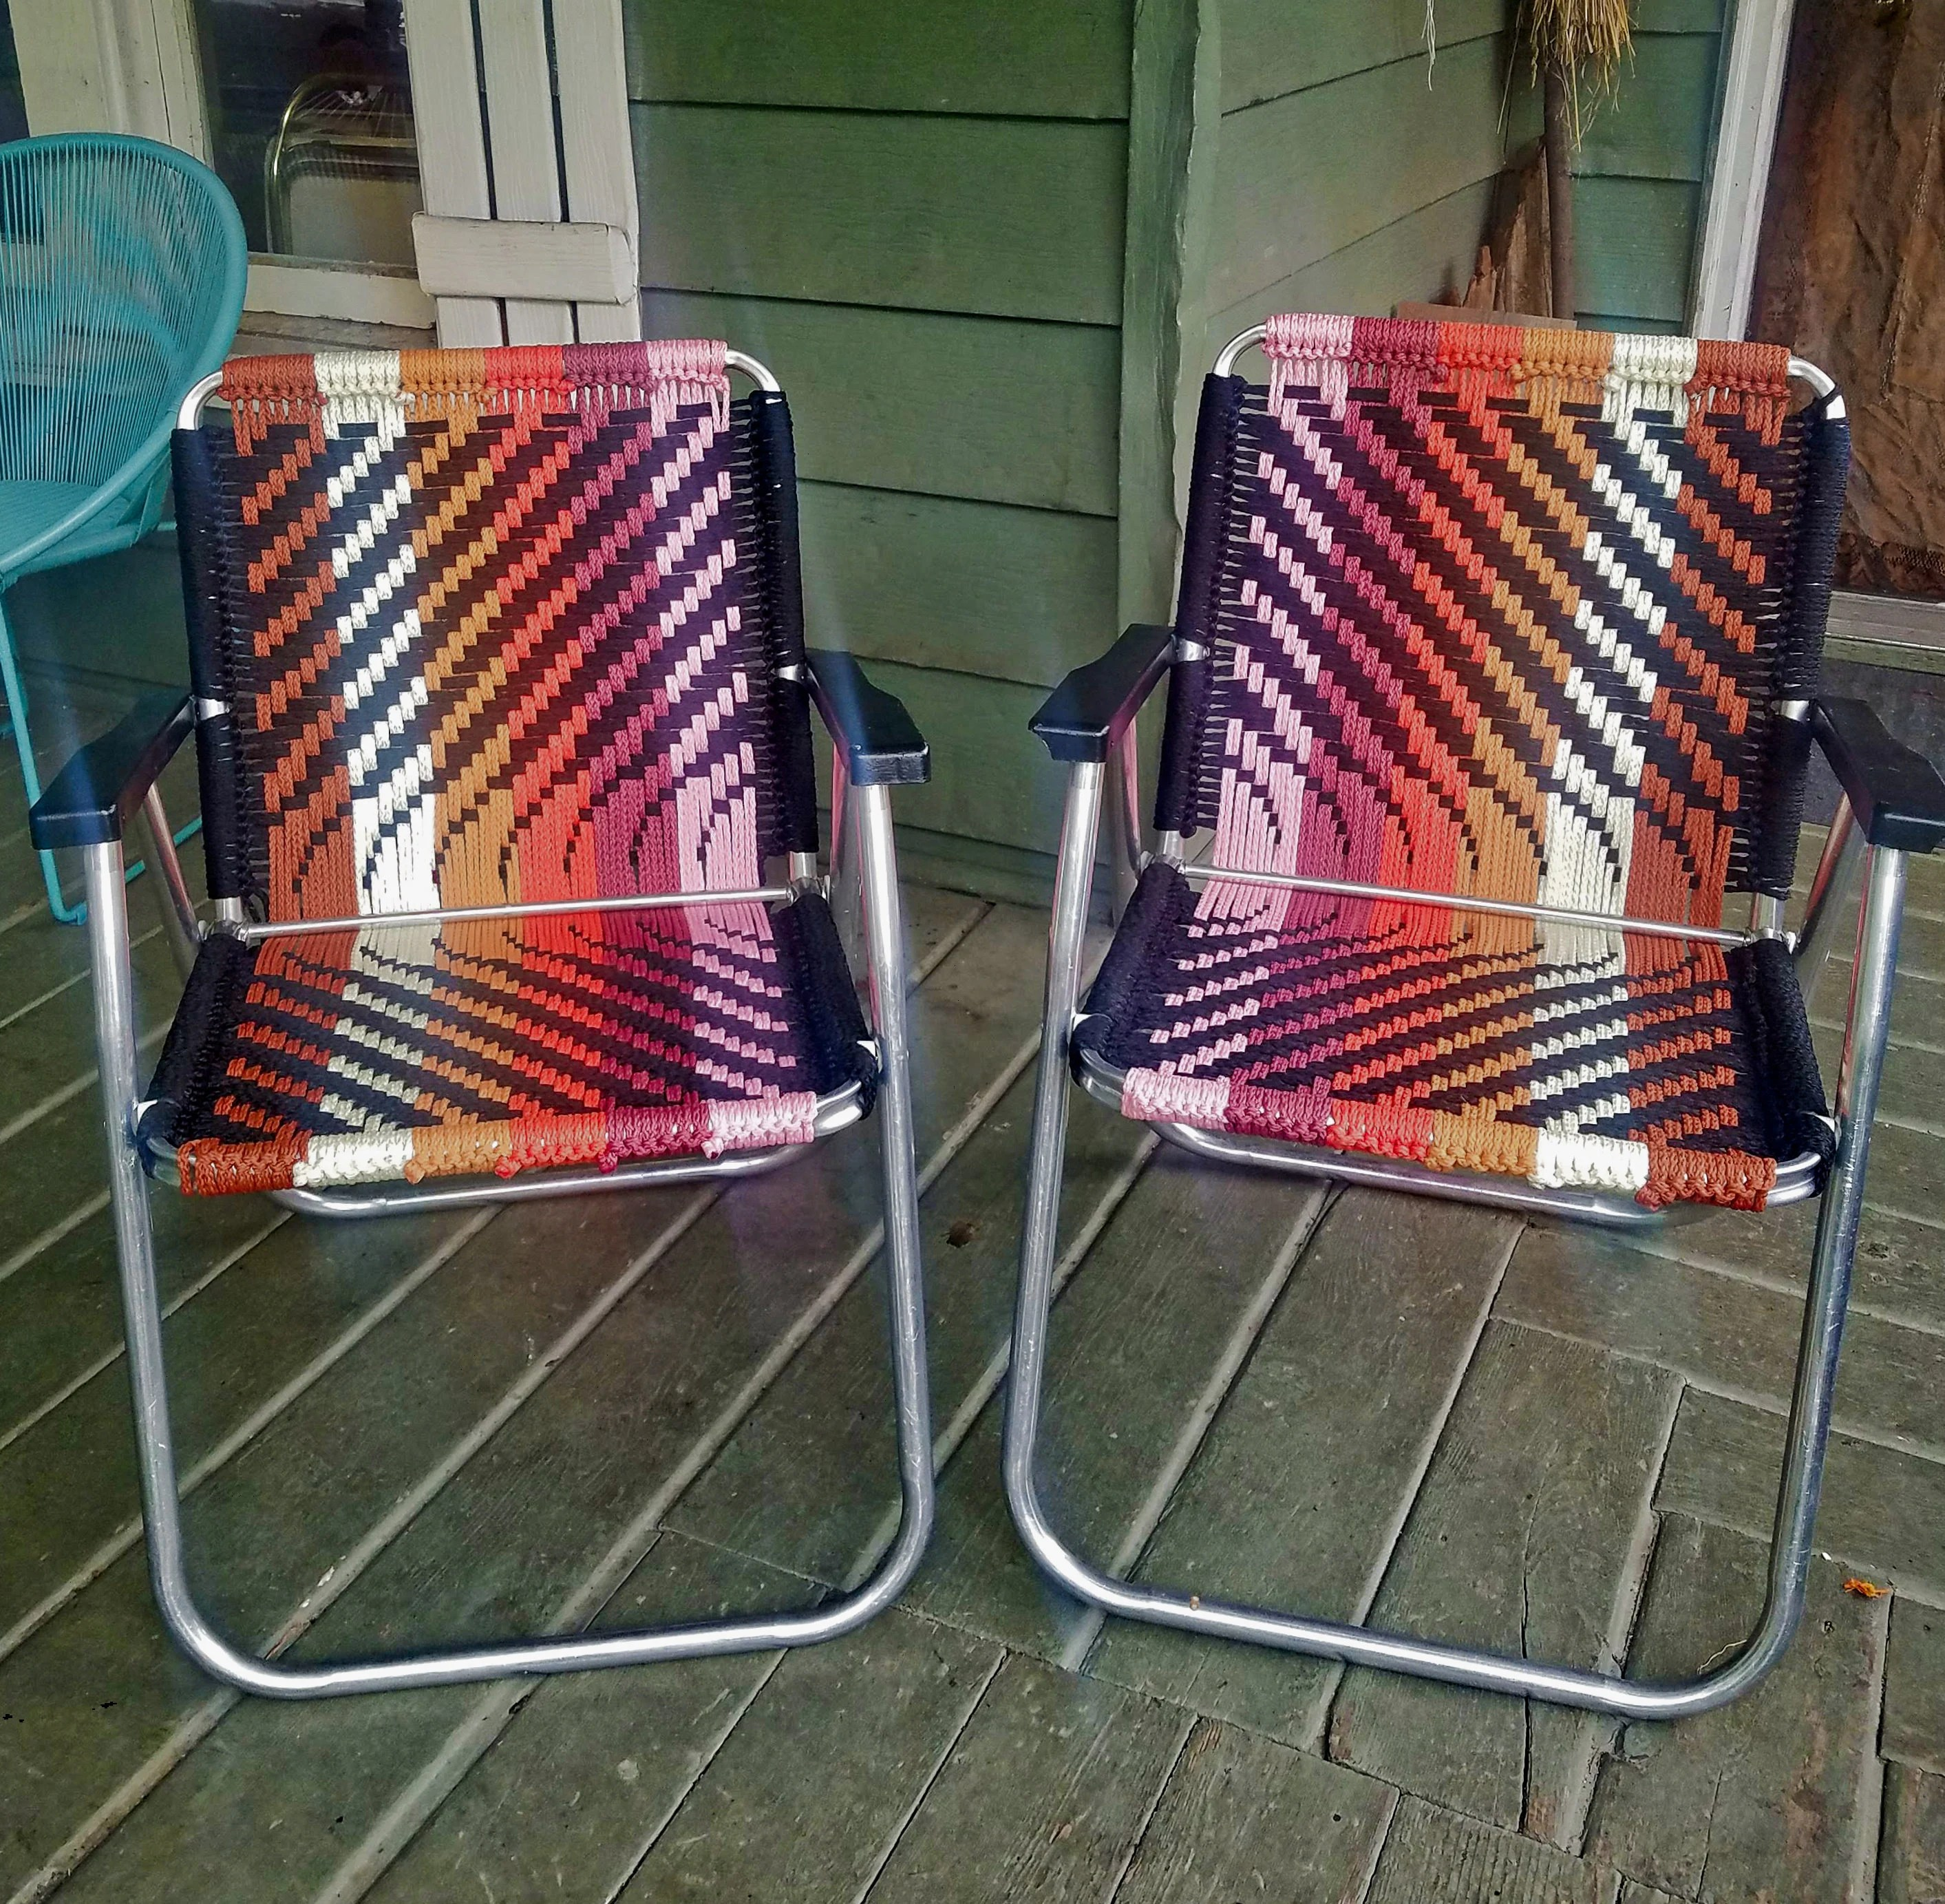 Woven Lawn Chair Custom Hand Woven Macrame Lawn Chair Vintage Folding Camping Chair Weaving Patio Chair Hipster Yard Decor Festival Seat Burner Camp